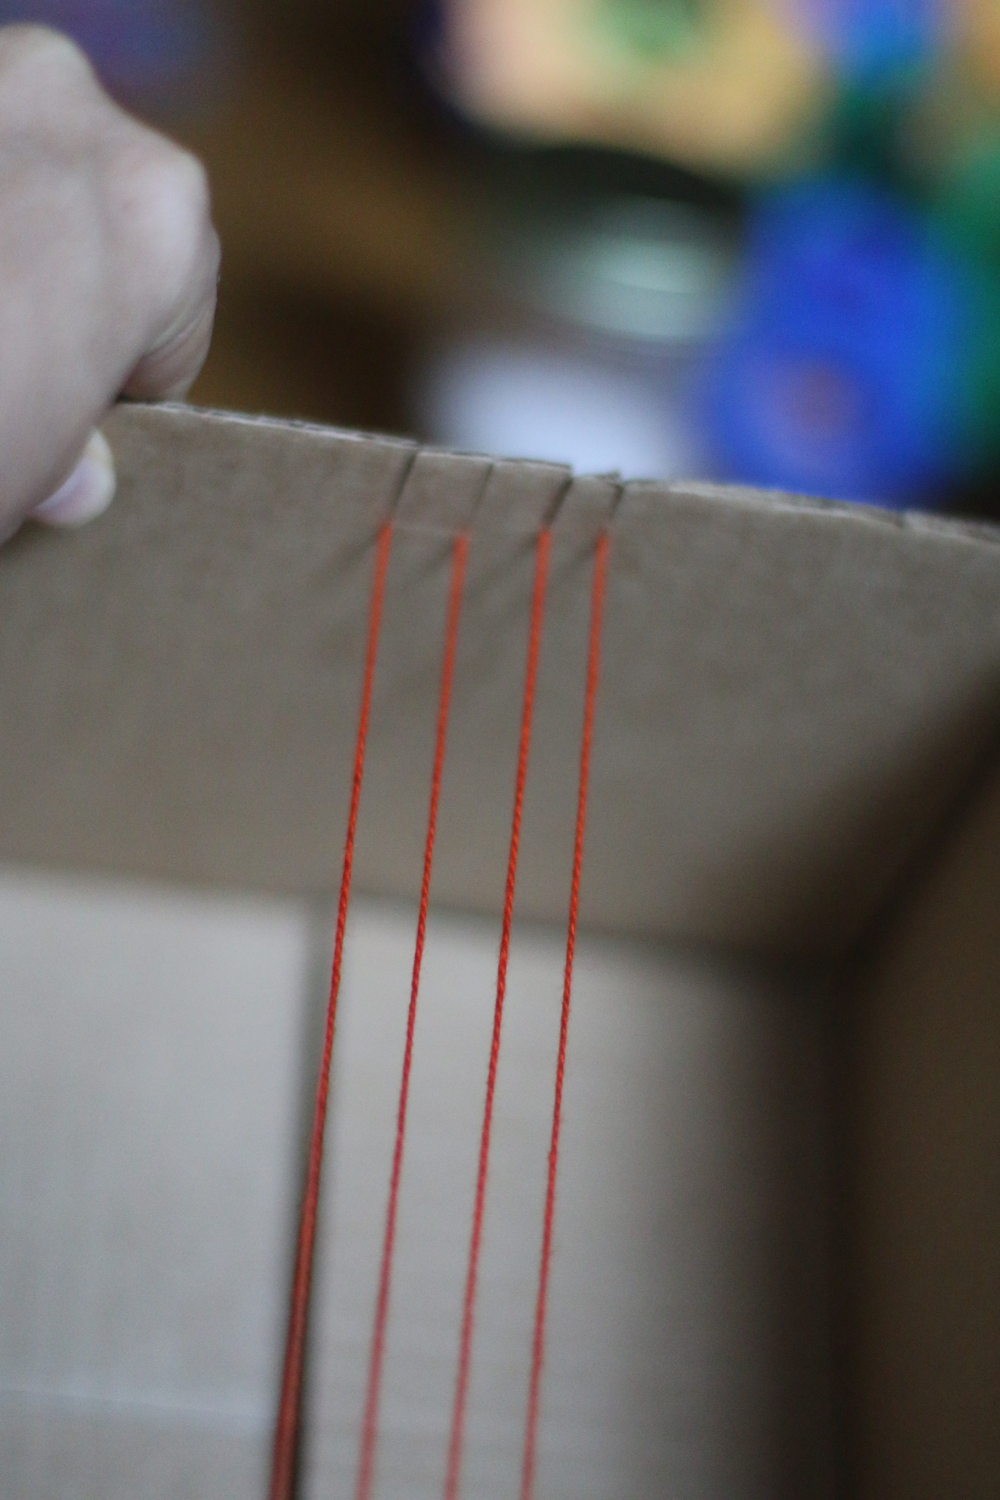 a prepared cardboard box loom for a Native American inspired beading project for homeschooling